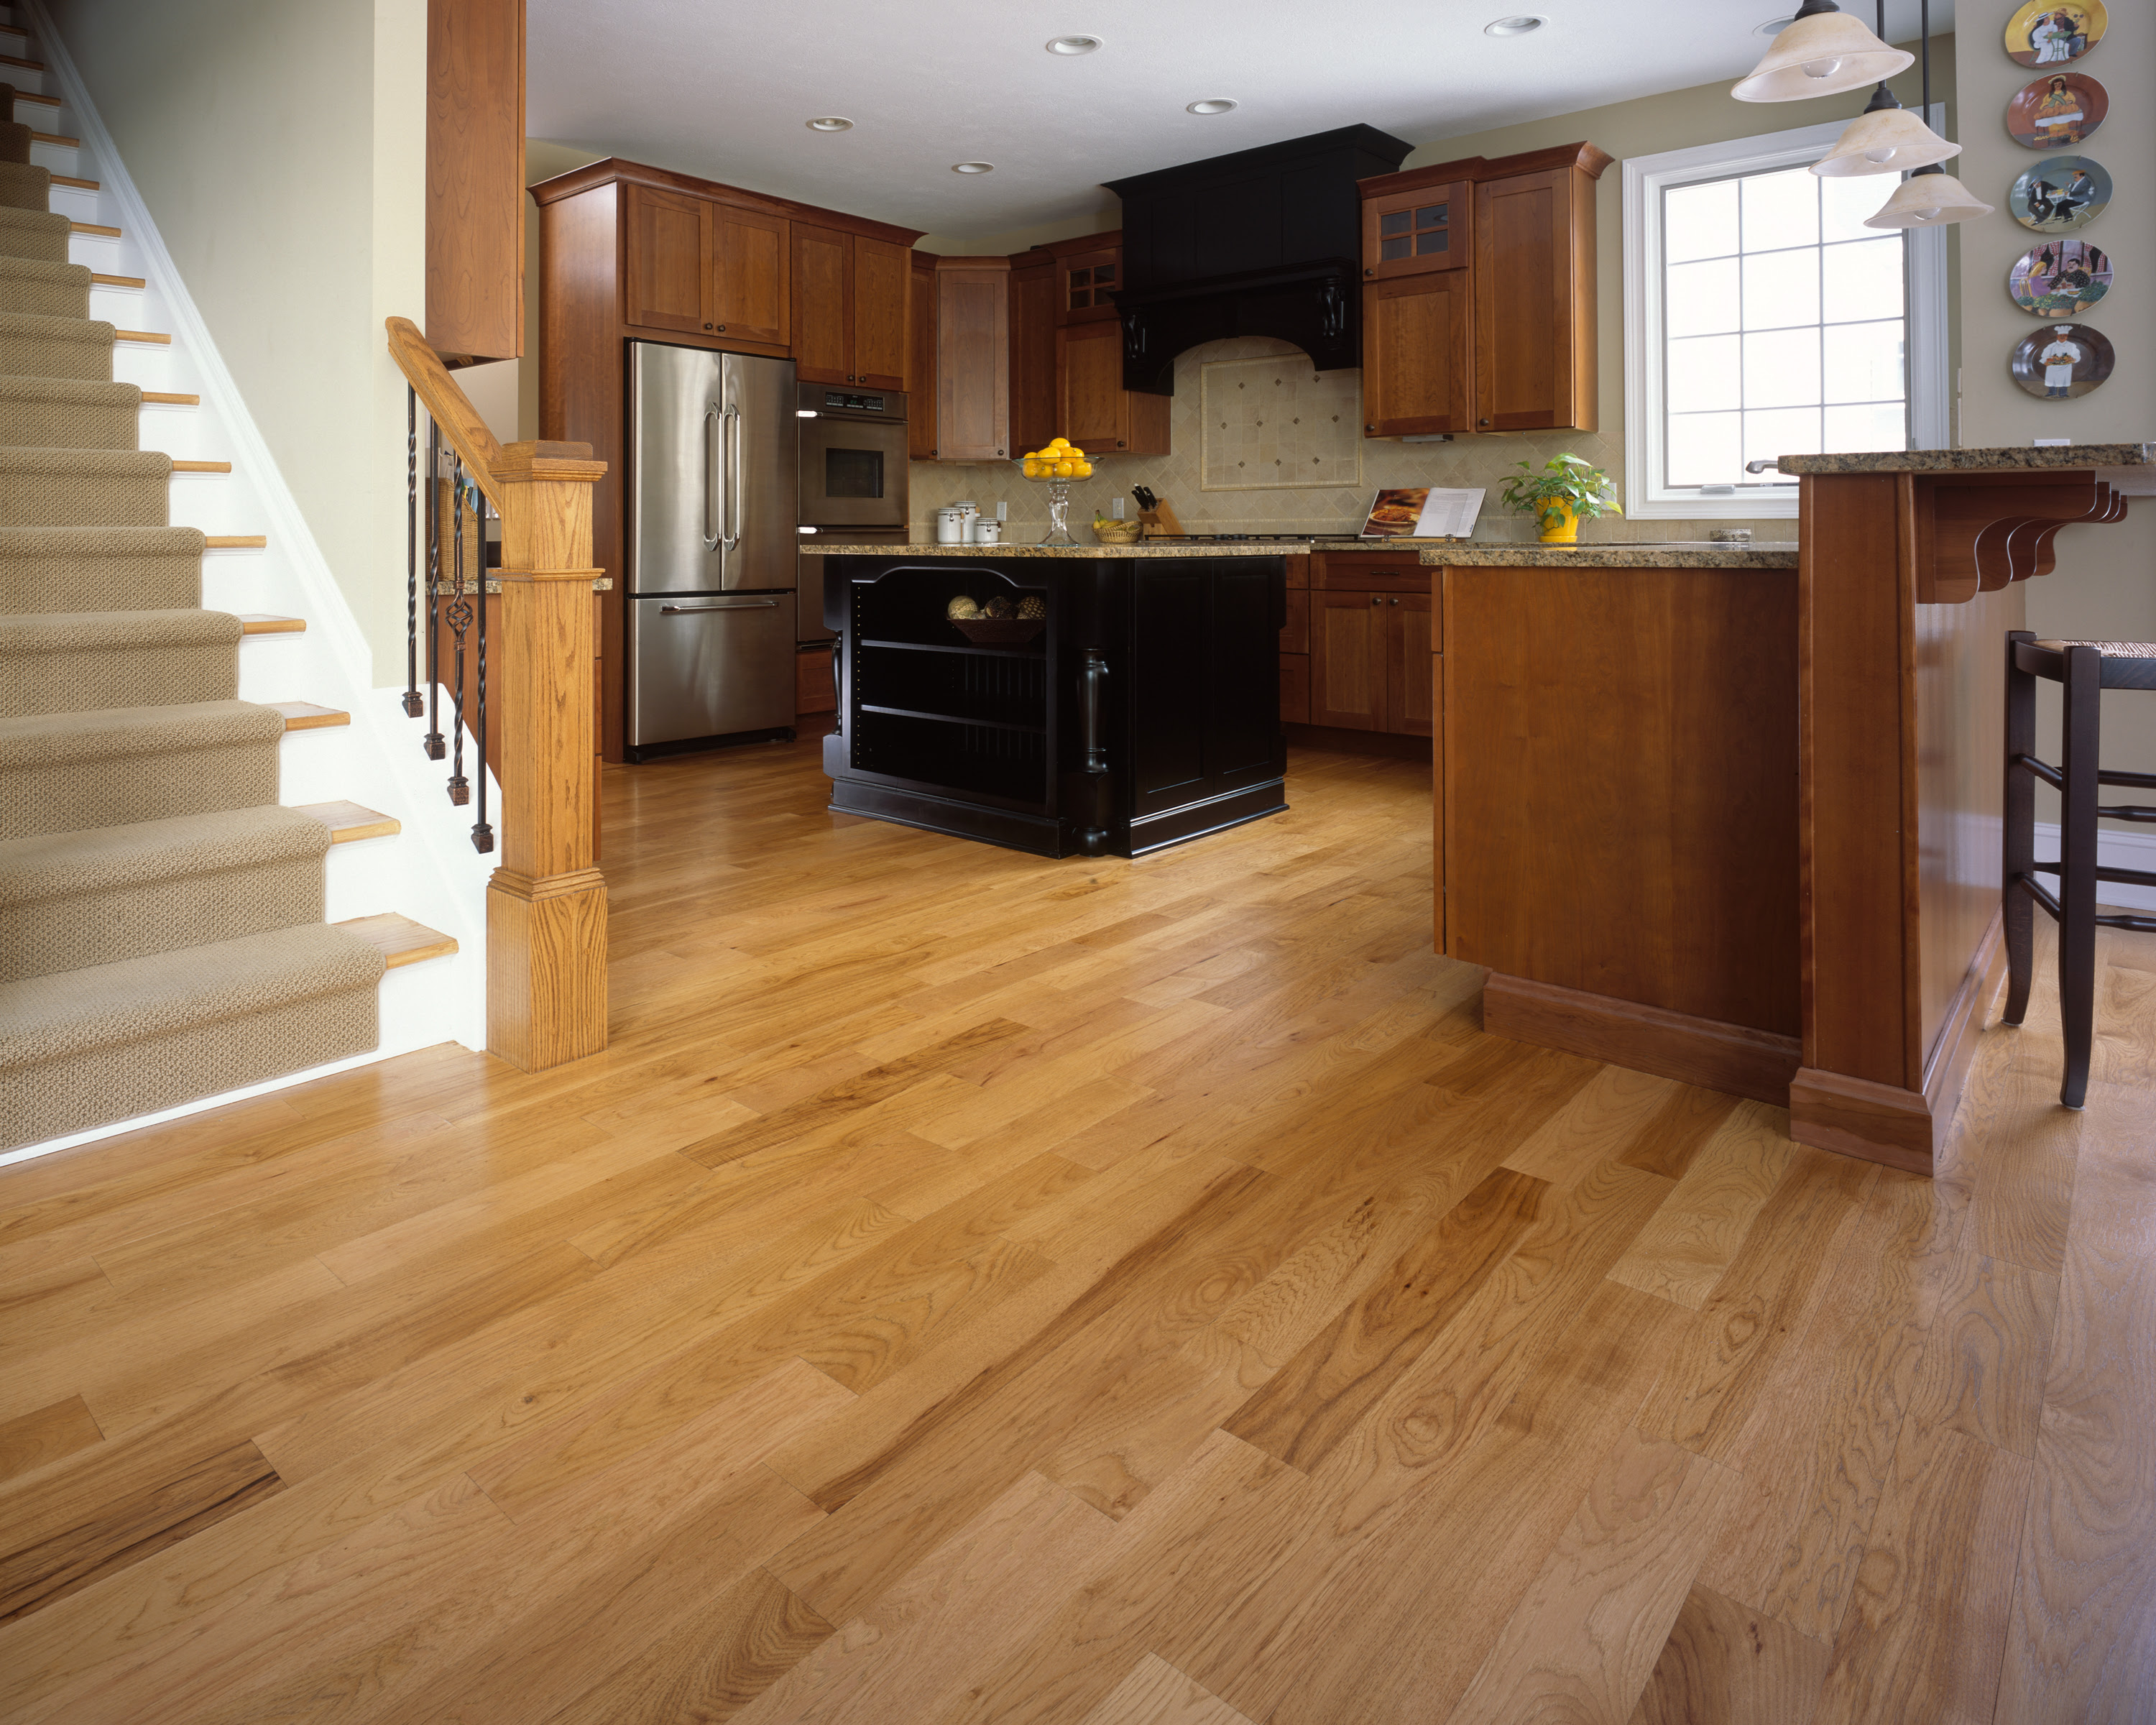 Wood Floor for Kitchen